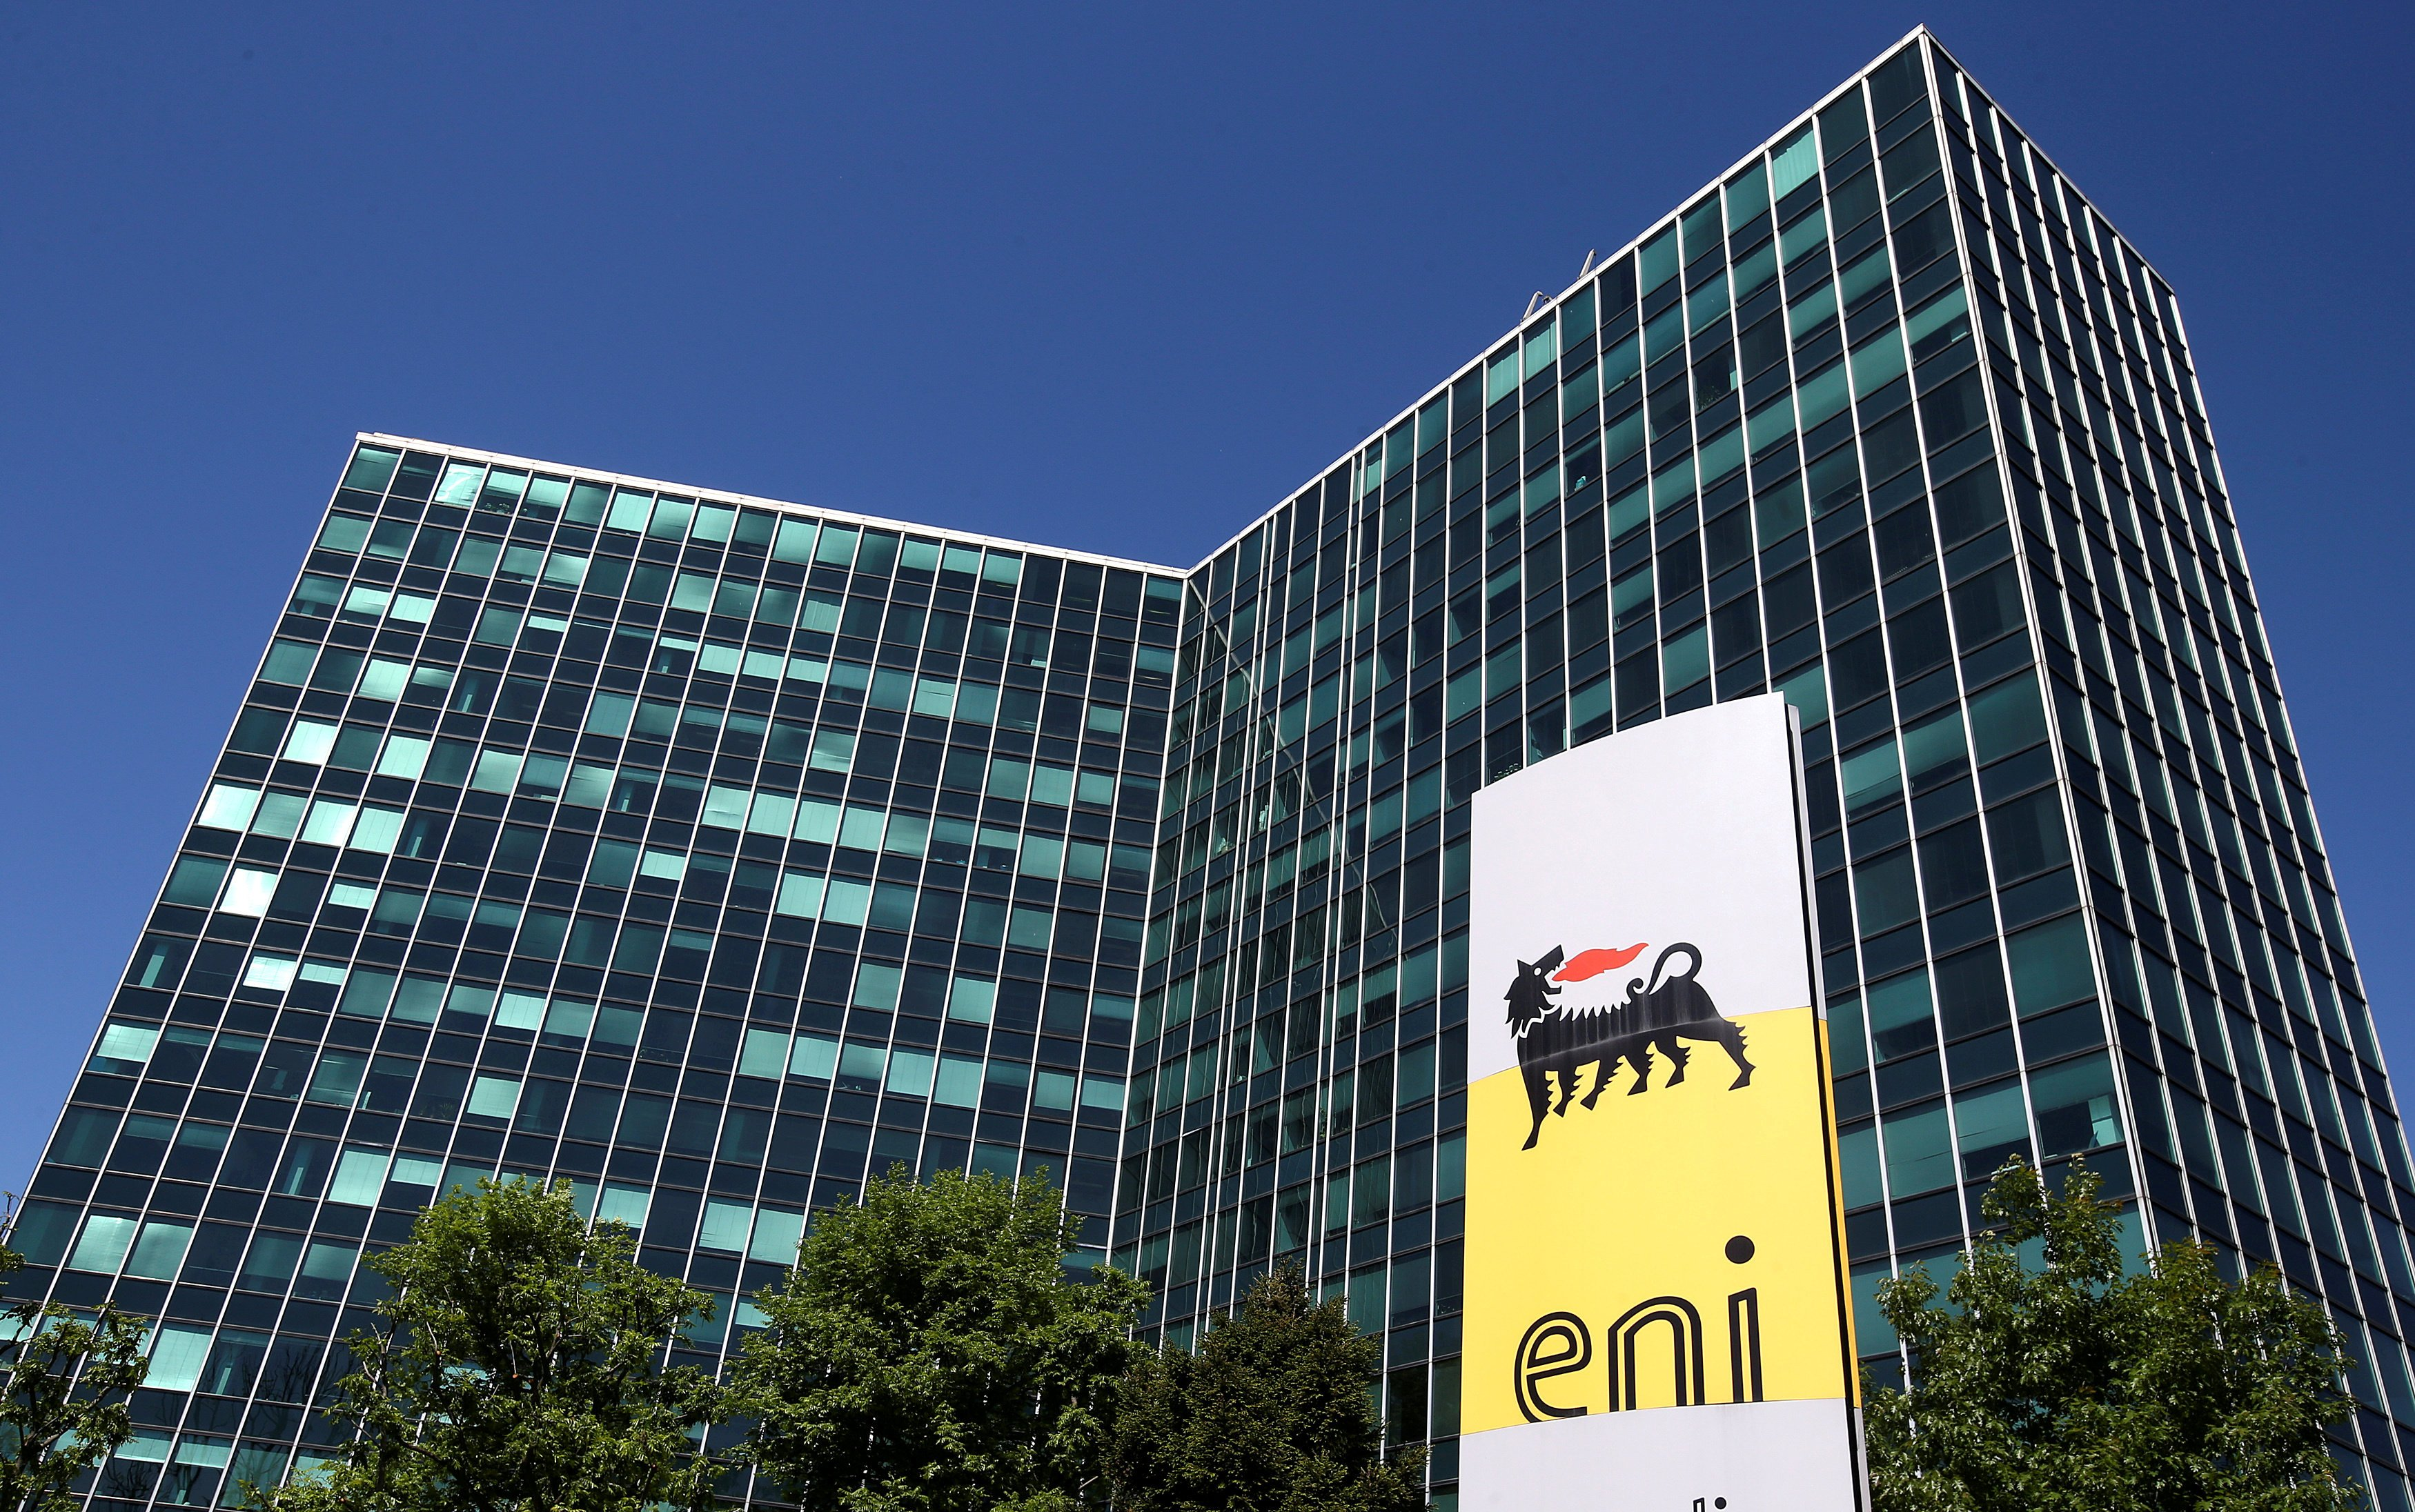 Eni's logo is seen in front of its headquarters in San Donato Milanese, near Milan, Italy, in this April 27, 2016 file photo. (Stefano Rellandini / Reuters File Photo)